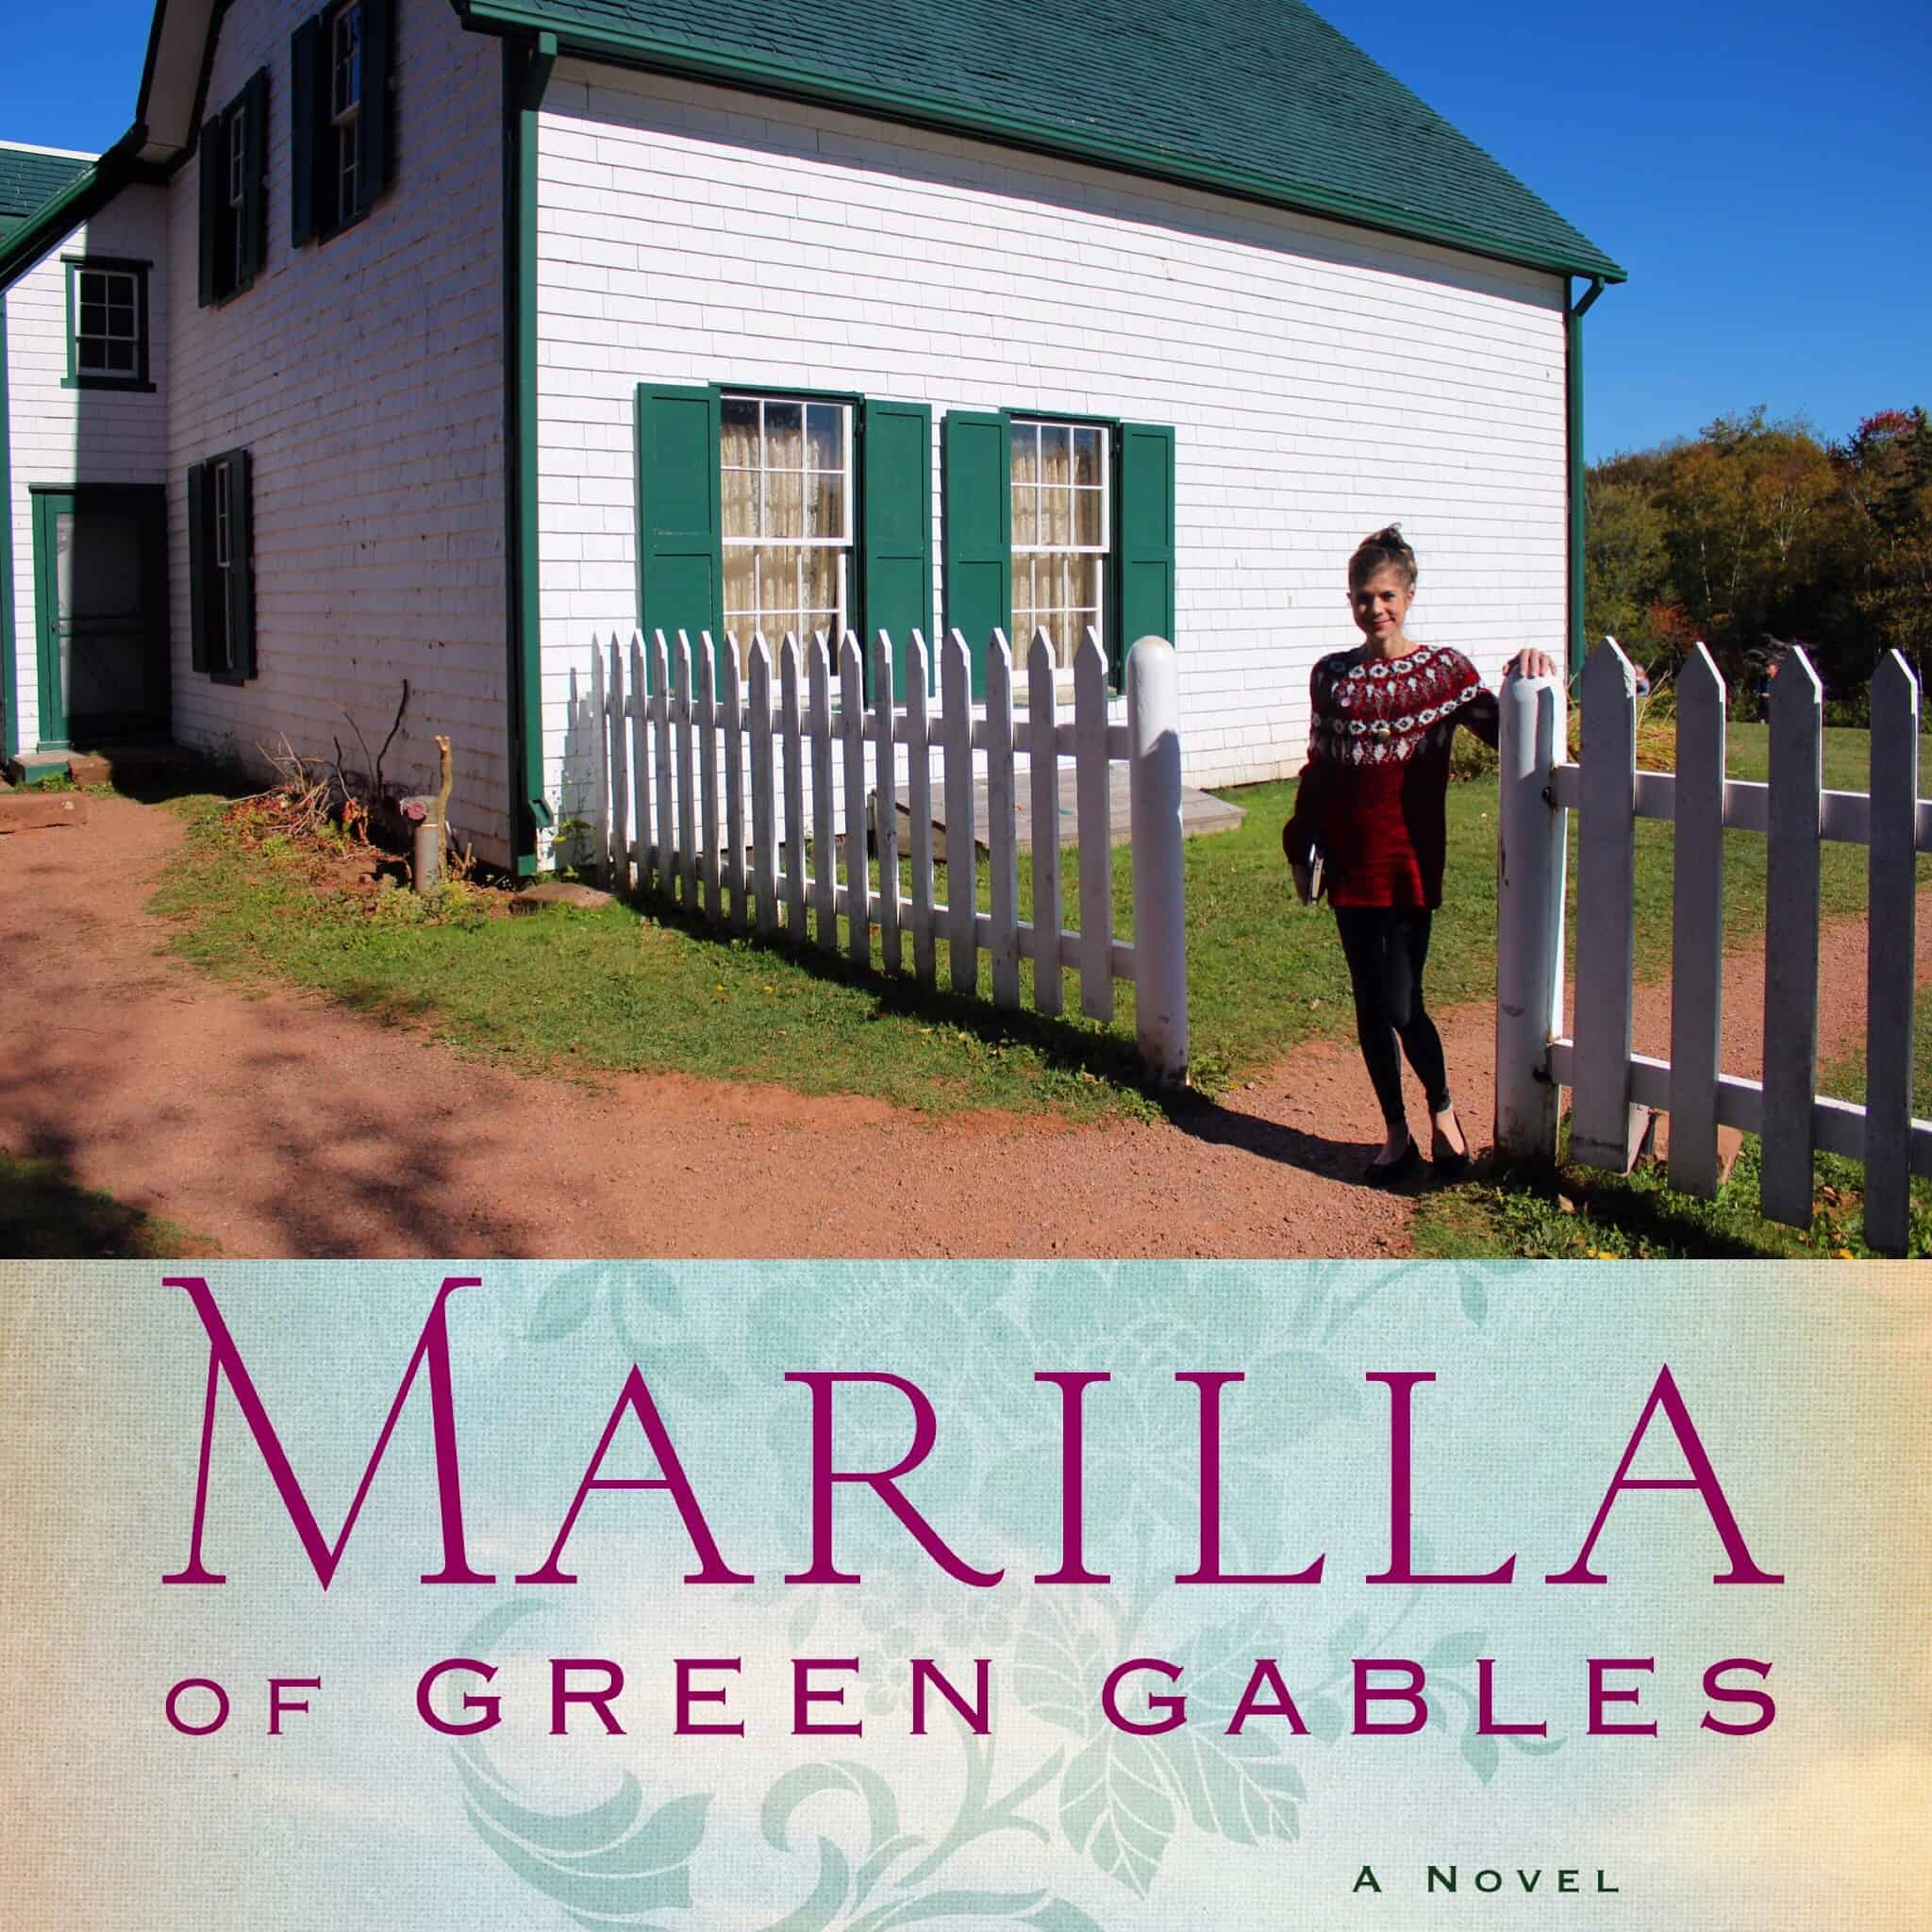 Photo of author Sarah McCoy in front of a house like cover of Marilla of Green Gables